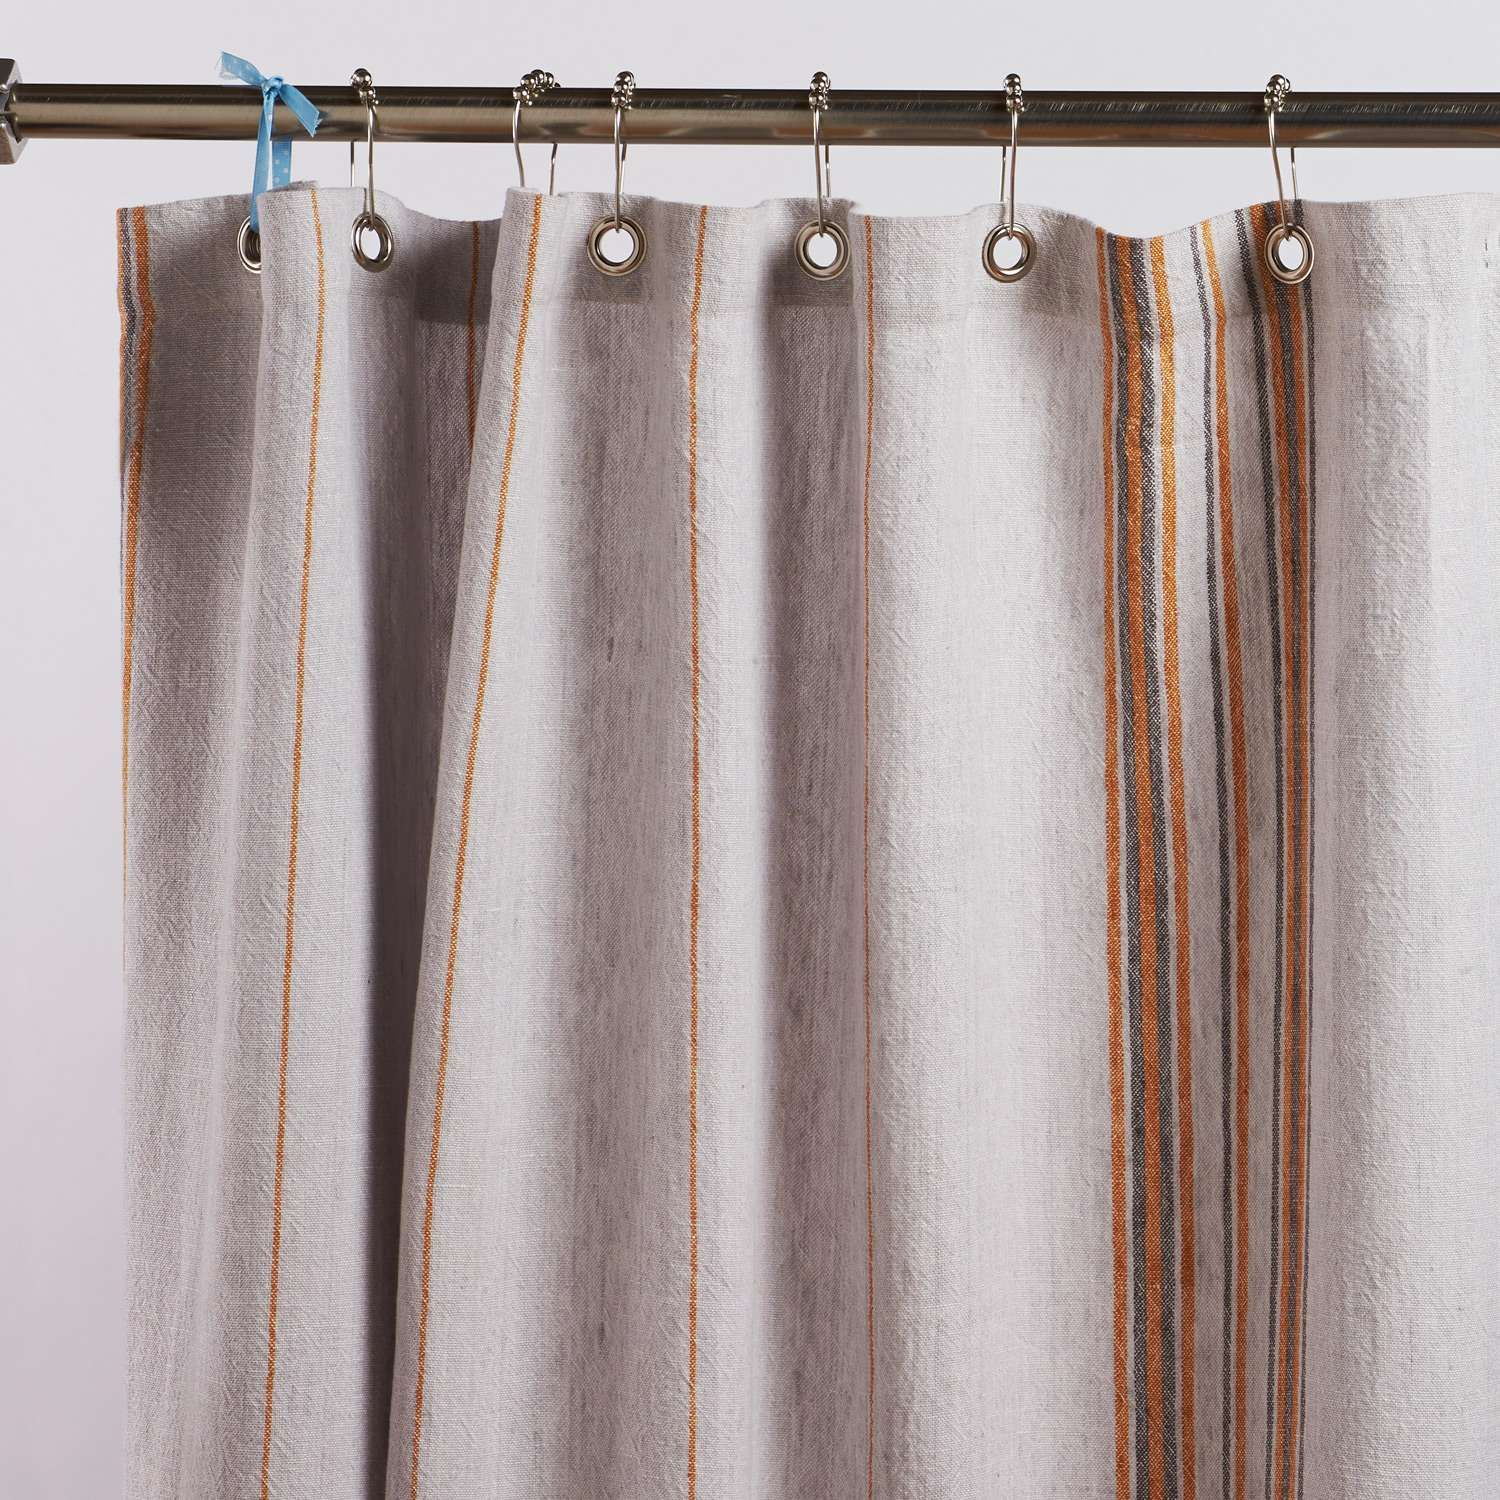 Rustic Linen Shower Curtain Curtains Curtain Rods Long Shower